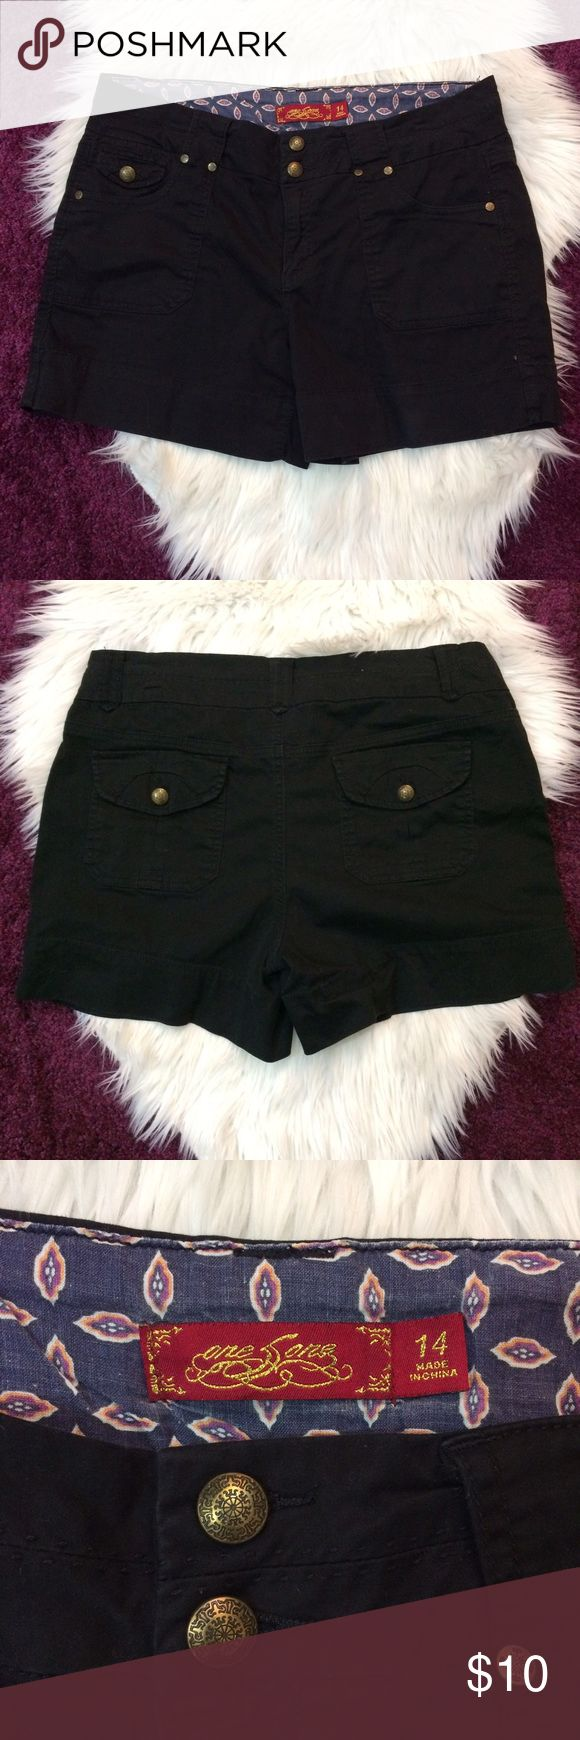 Black Khaki Shorts by One 5 One Denim Black khaki shorts size 14. Waist is 18 across, inseam is 5, rise is 10. 98% cotton and 2% spandex. Really soft! Open to offers and 30% off bundles! one 5 one Shorts